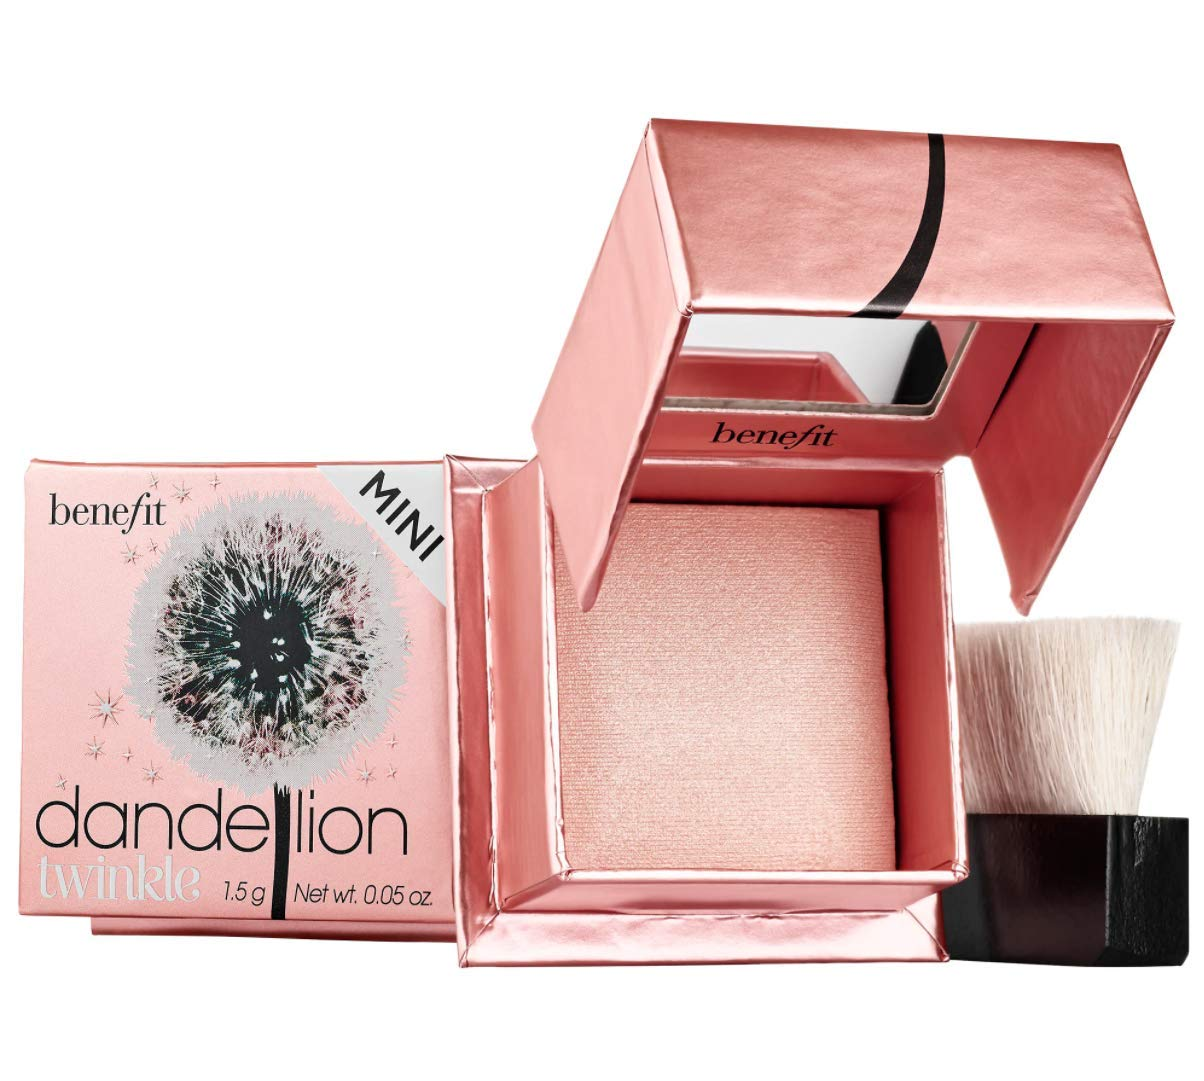 Benefit Cosmetics Dandelion Twinkle Pink Industry No. 1 Nude Powder Highlighter Popular shop is the lowest price challenge